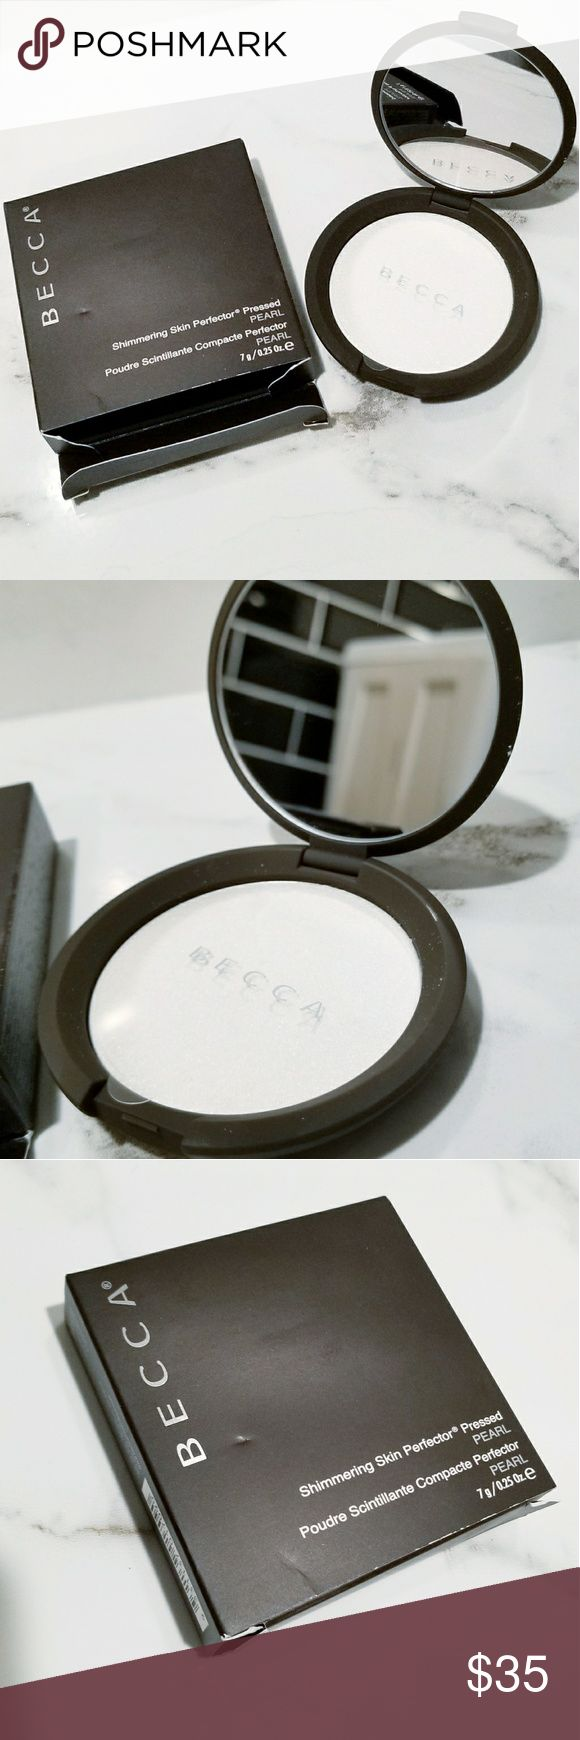 Becca Shimmering Skin Perfector Highlighter :Pearl Becca Shimmering Skin Perfector Shimmering  Color: Pearl  Never been used. NWT  Makeup highlighter for face BECCA Makeup Luminizer